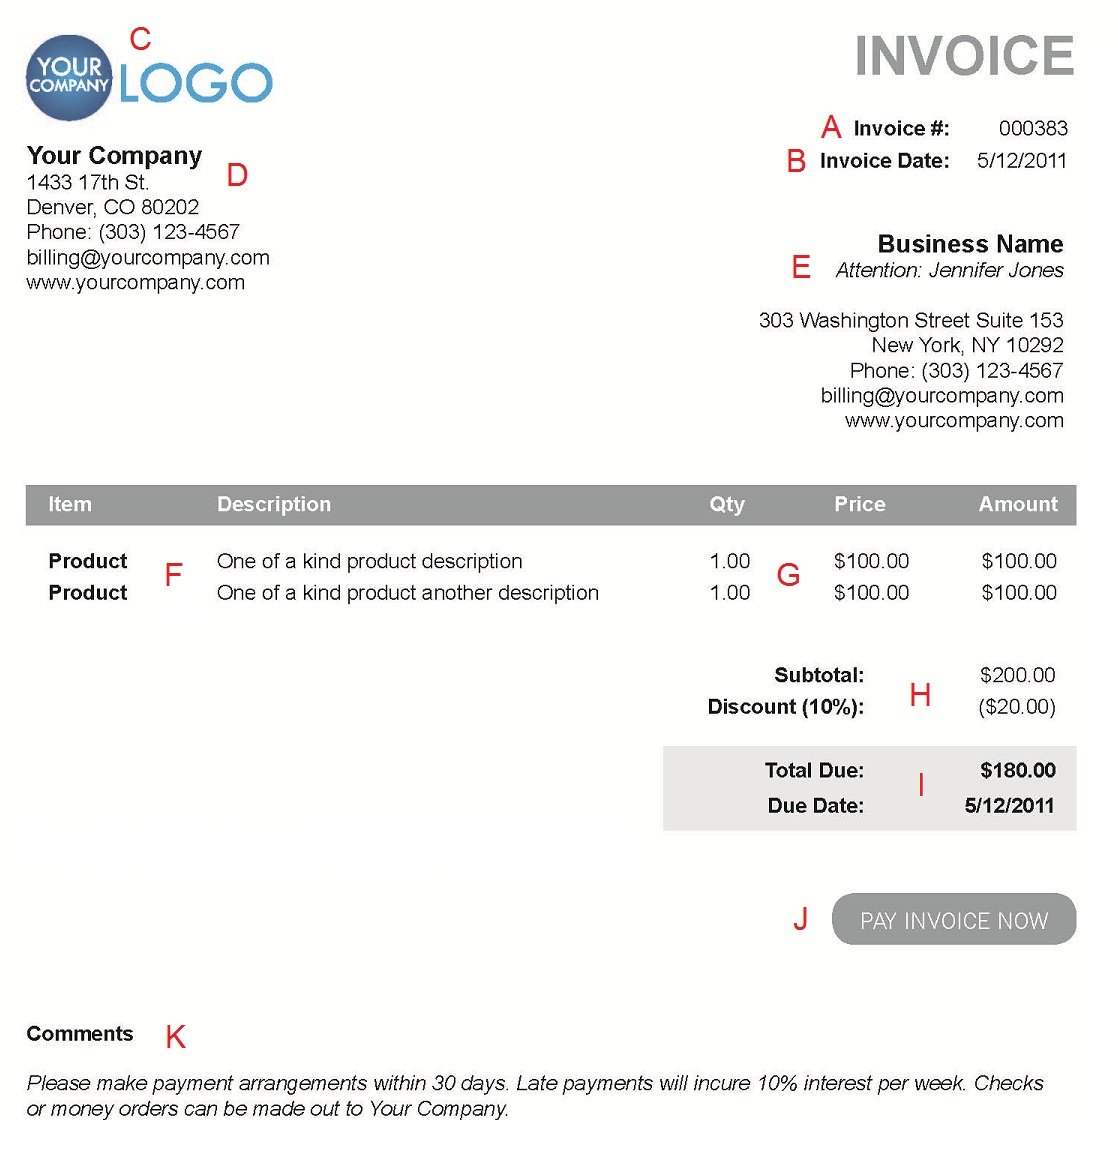 Proatmealus  Terrific The  Different Sections Of An Electronic Payment Invoice With Likable A  With Astounding Cash Sales Receipt Template Also Receipt Maker Online Free In Addition Sample Of Receipt Template And Tax Deductible Receipts As Well As Sample Receipt Doc Additionally Pay Receipt Template From Paysimplecom With Proatmealus  Likable The  Different Sections Of An Electronic Payment Invoice With Astounding A  And Terrific Cash Sales Receipt Template Also Receipt Maker Online Free In Addition Sample Of Receipt Template From Paysimplecom